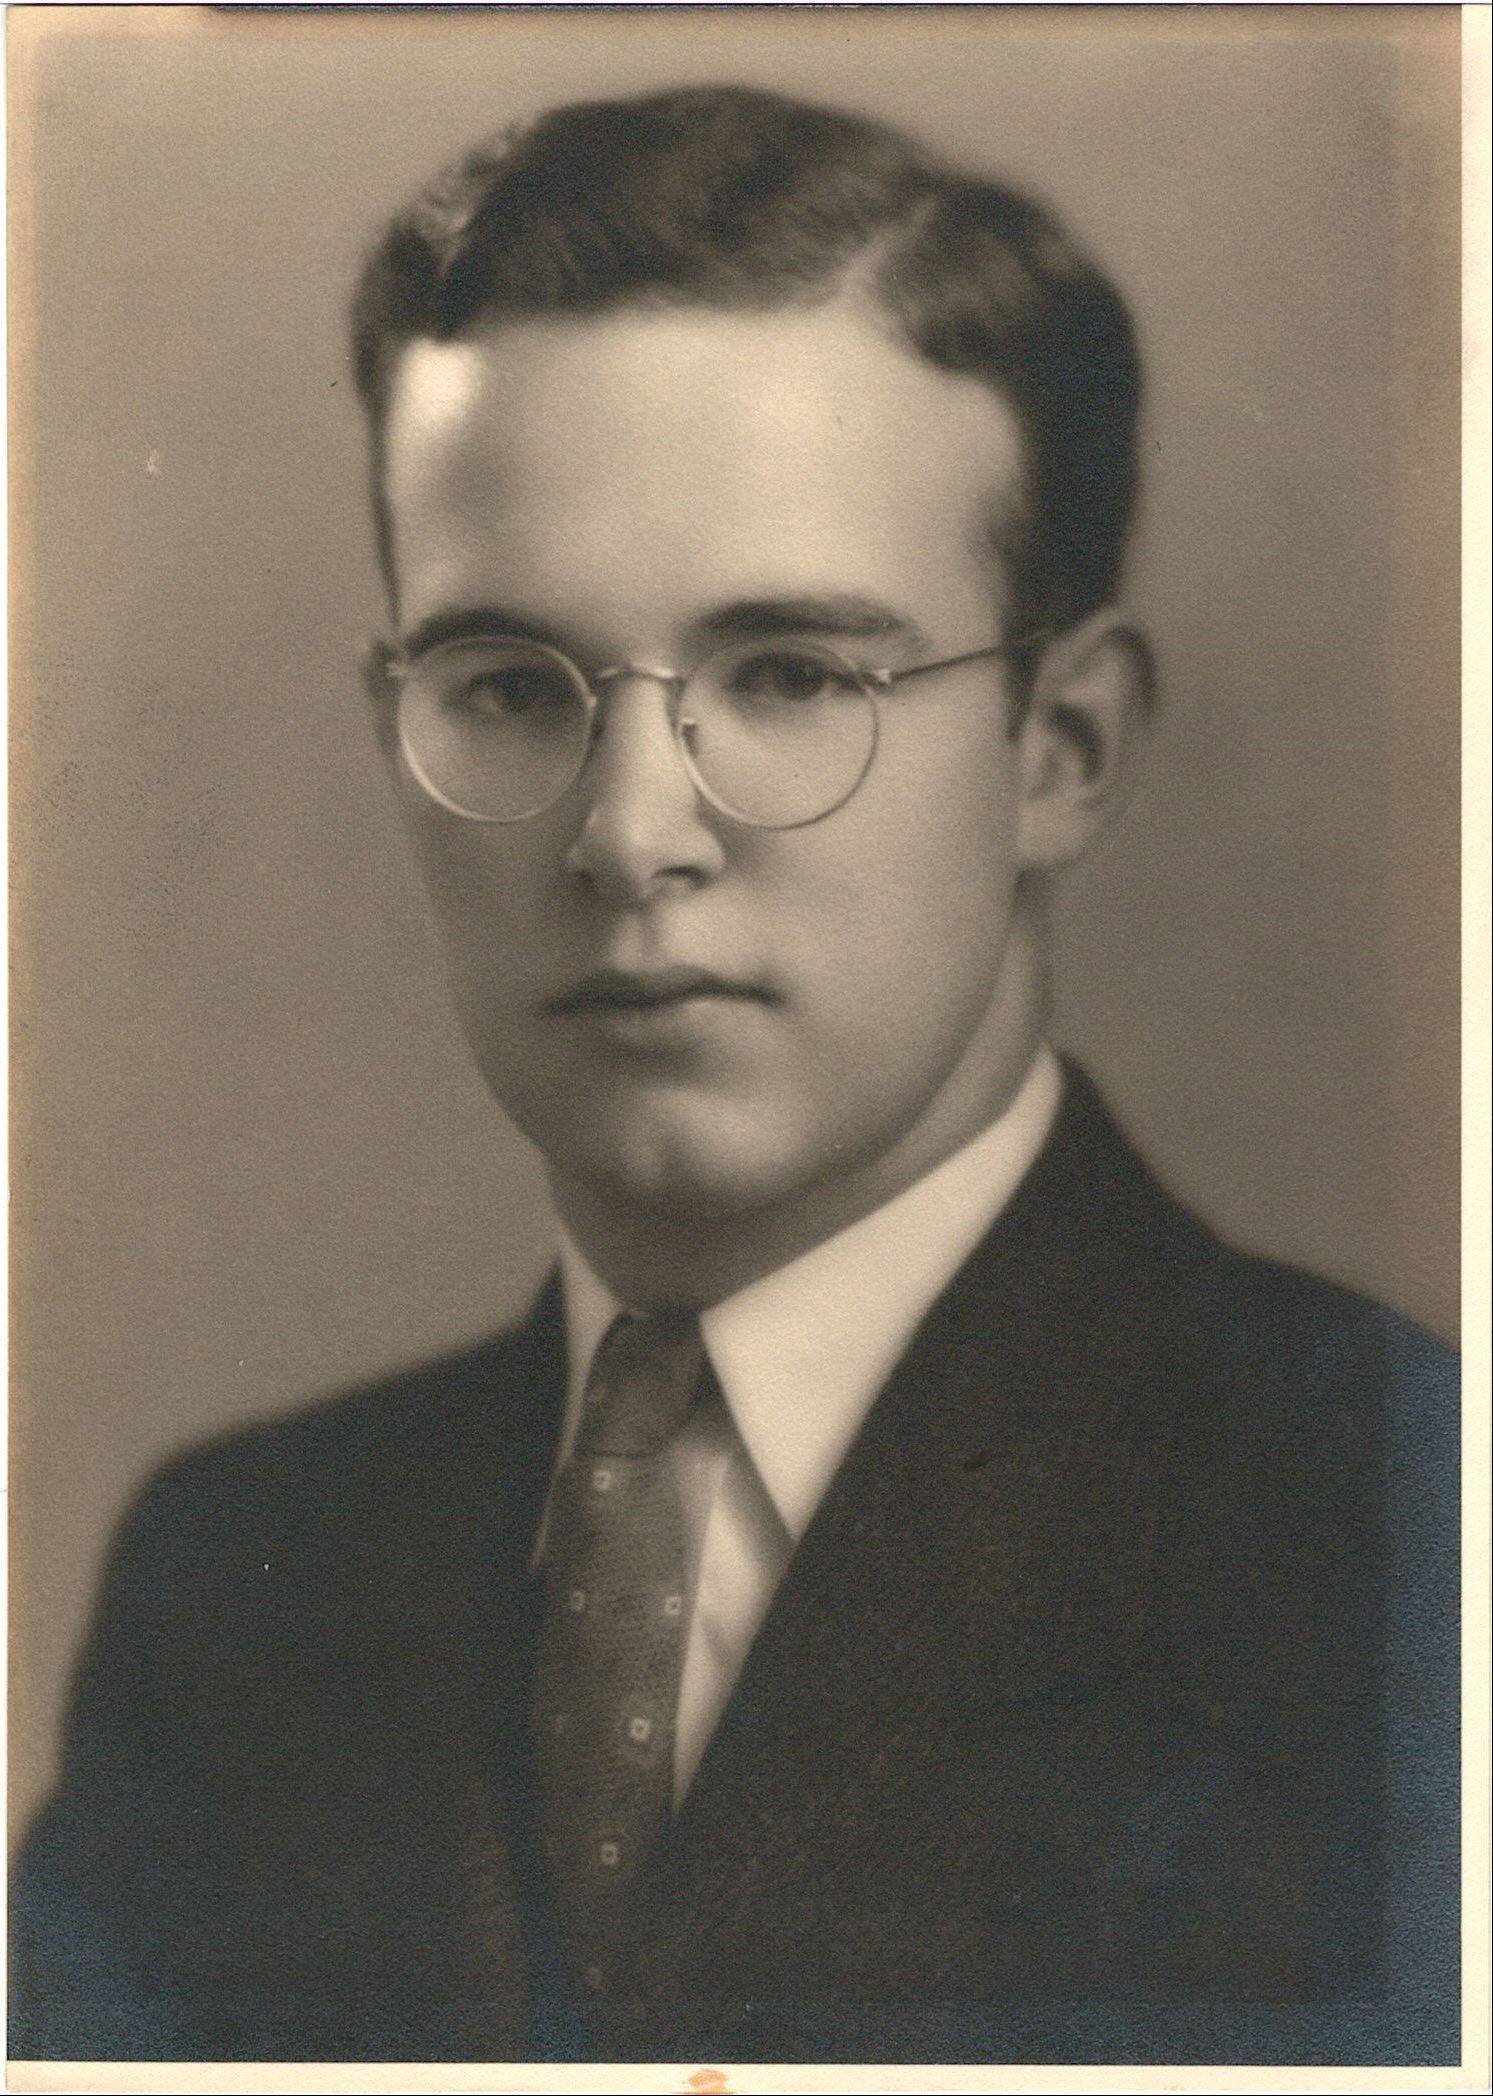 Allen Fox Mead, upon his graduation from the University of Wisconsin.